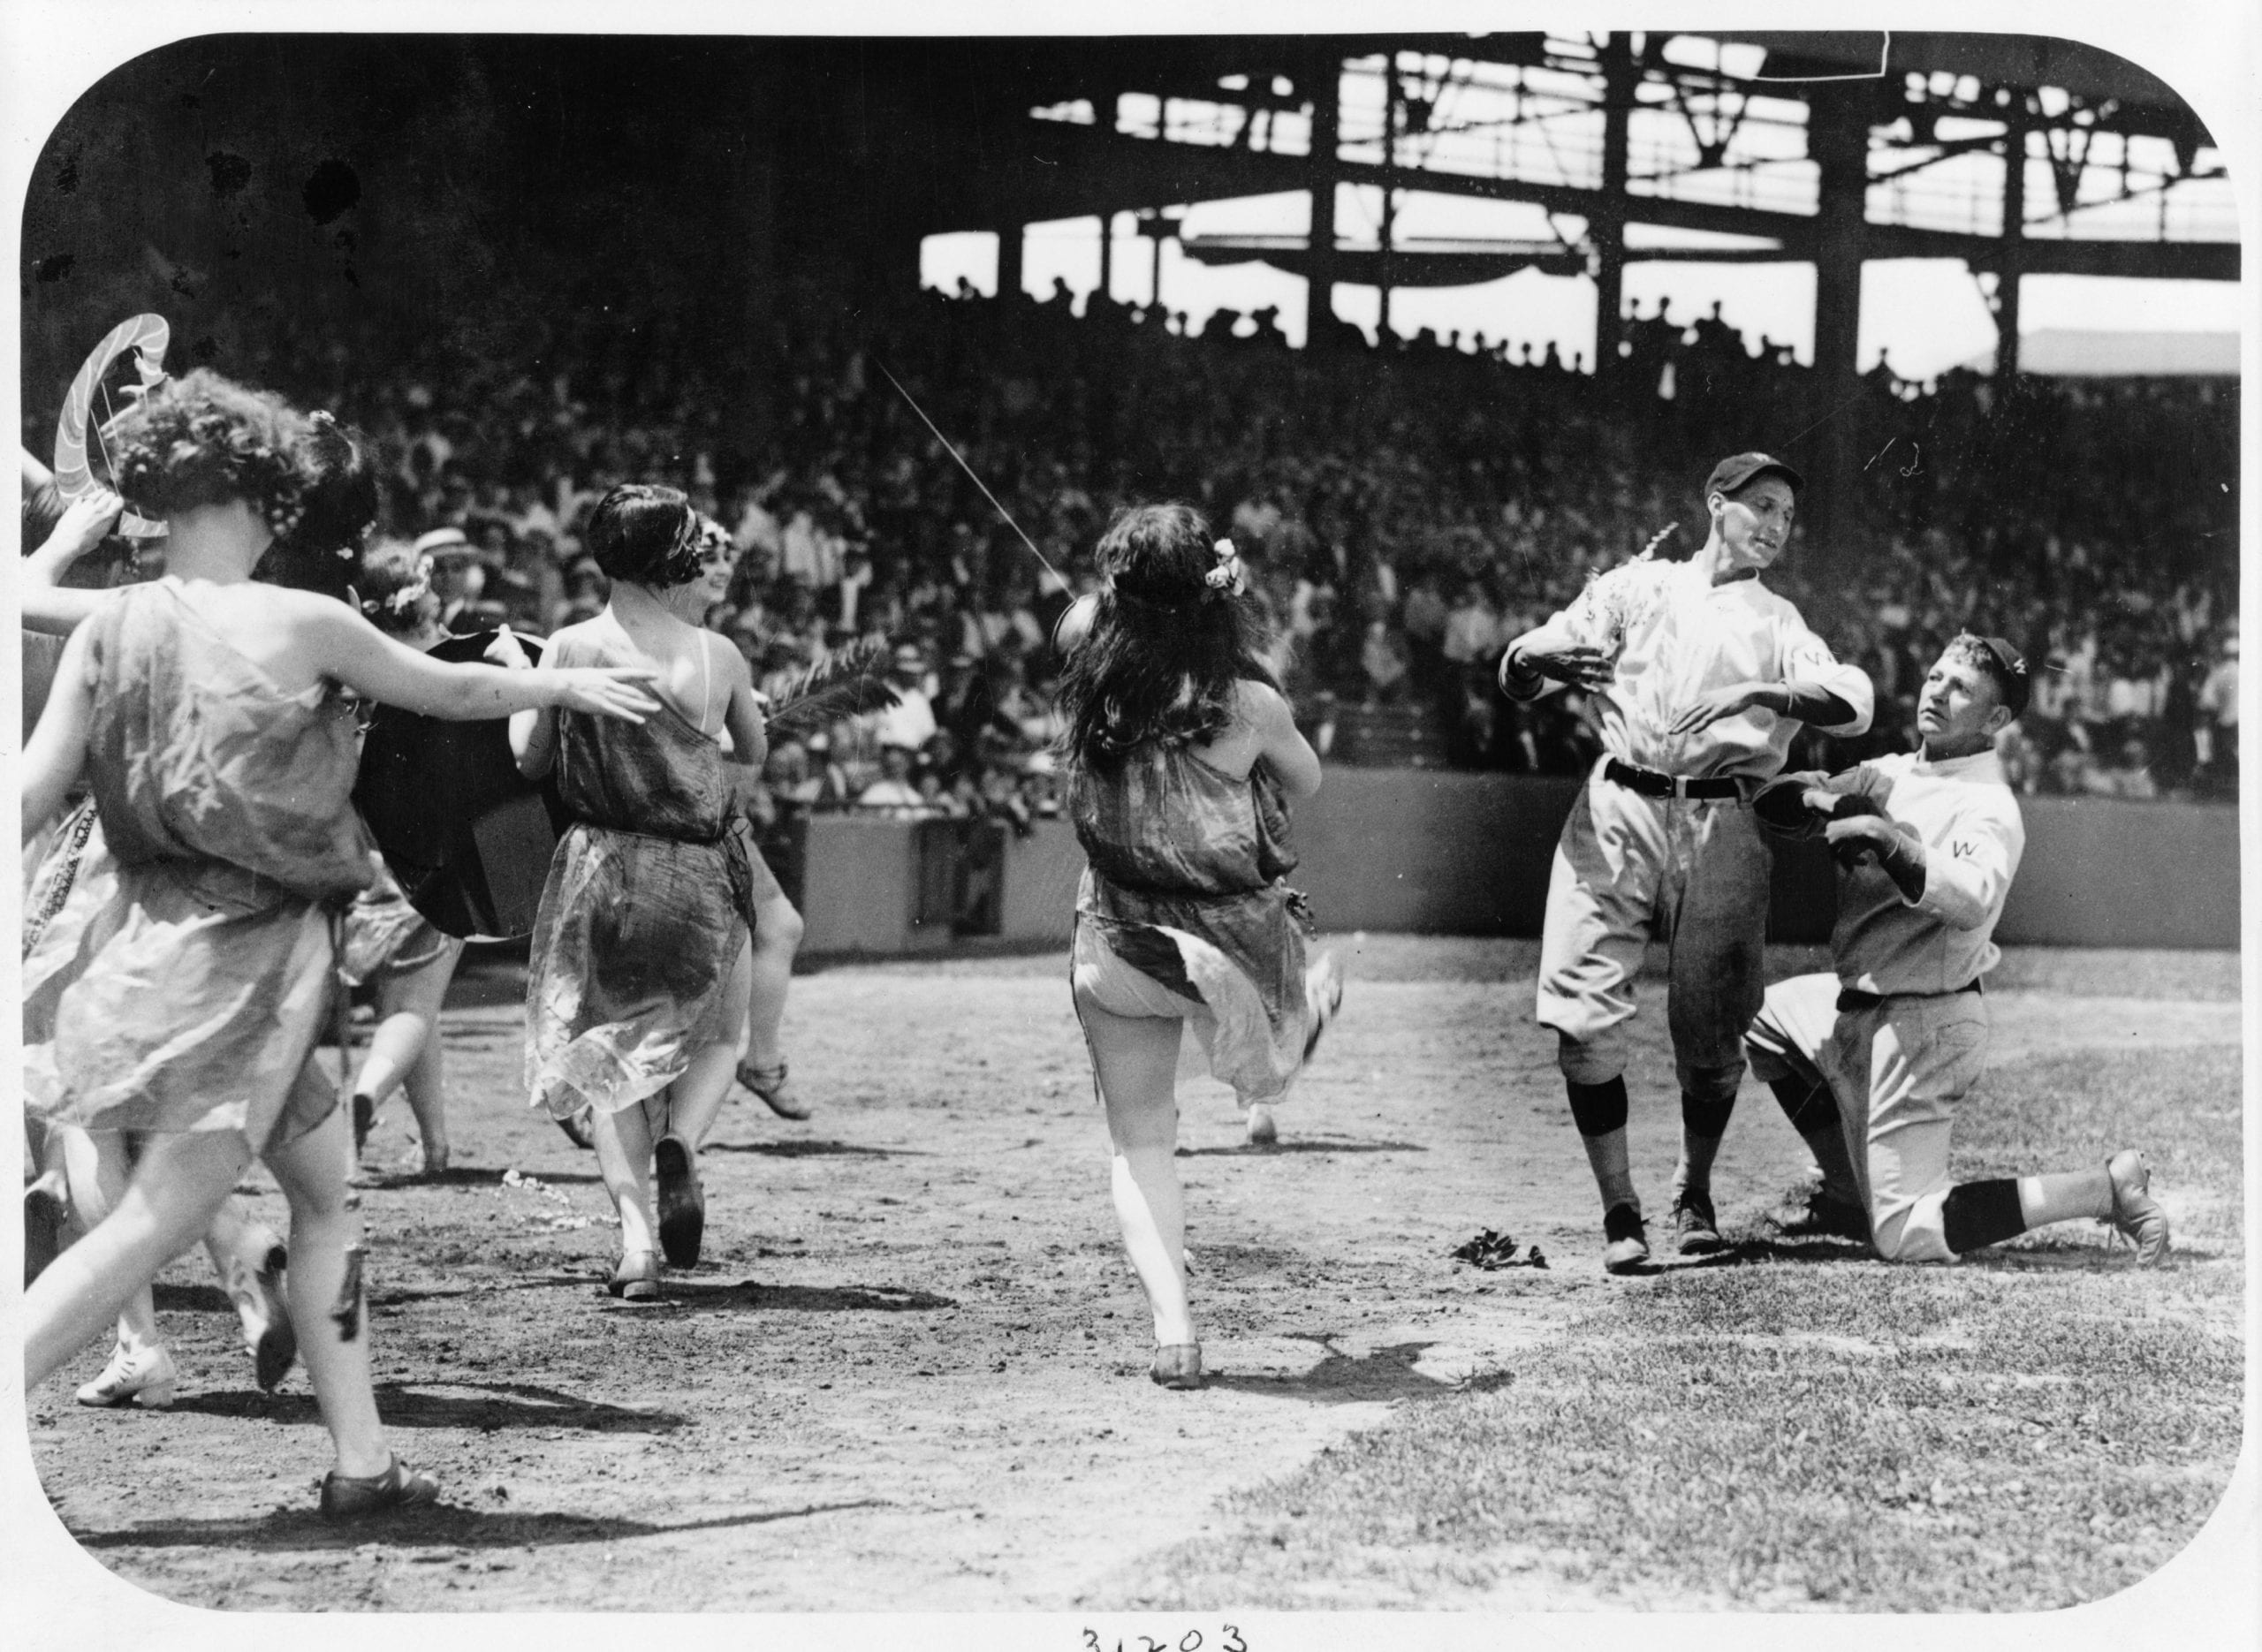 women dancing on the field at Nationals game - 1924 (vanishedamerica.com)